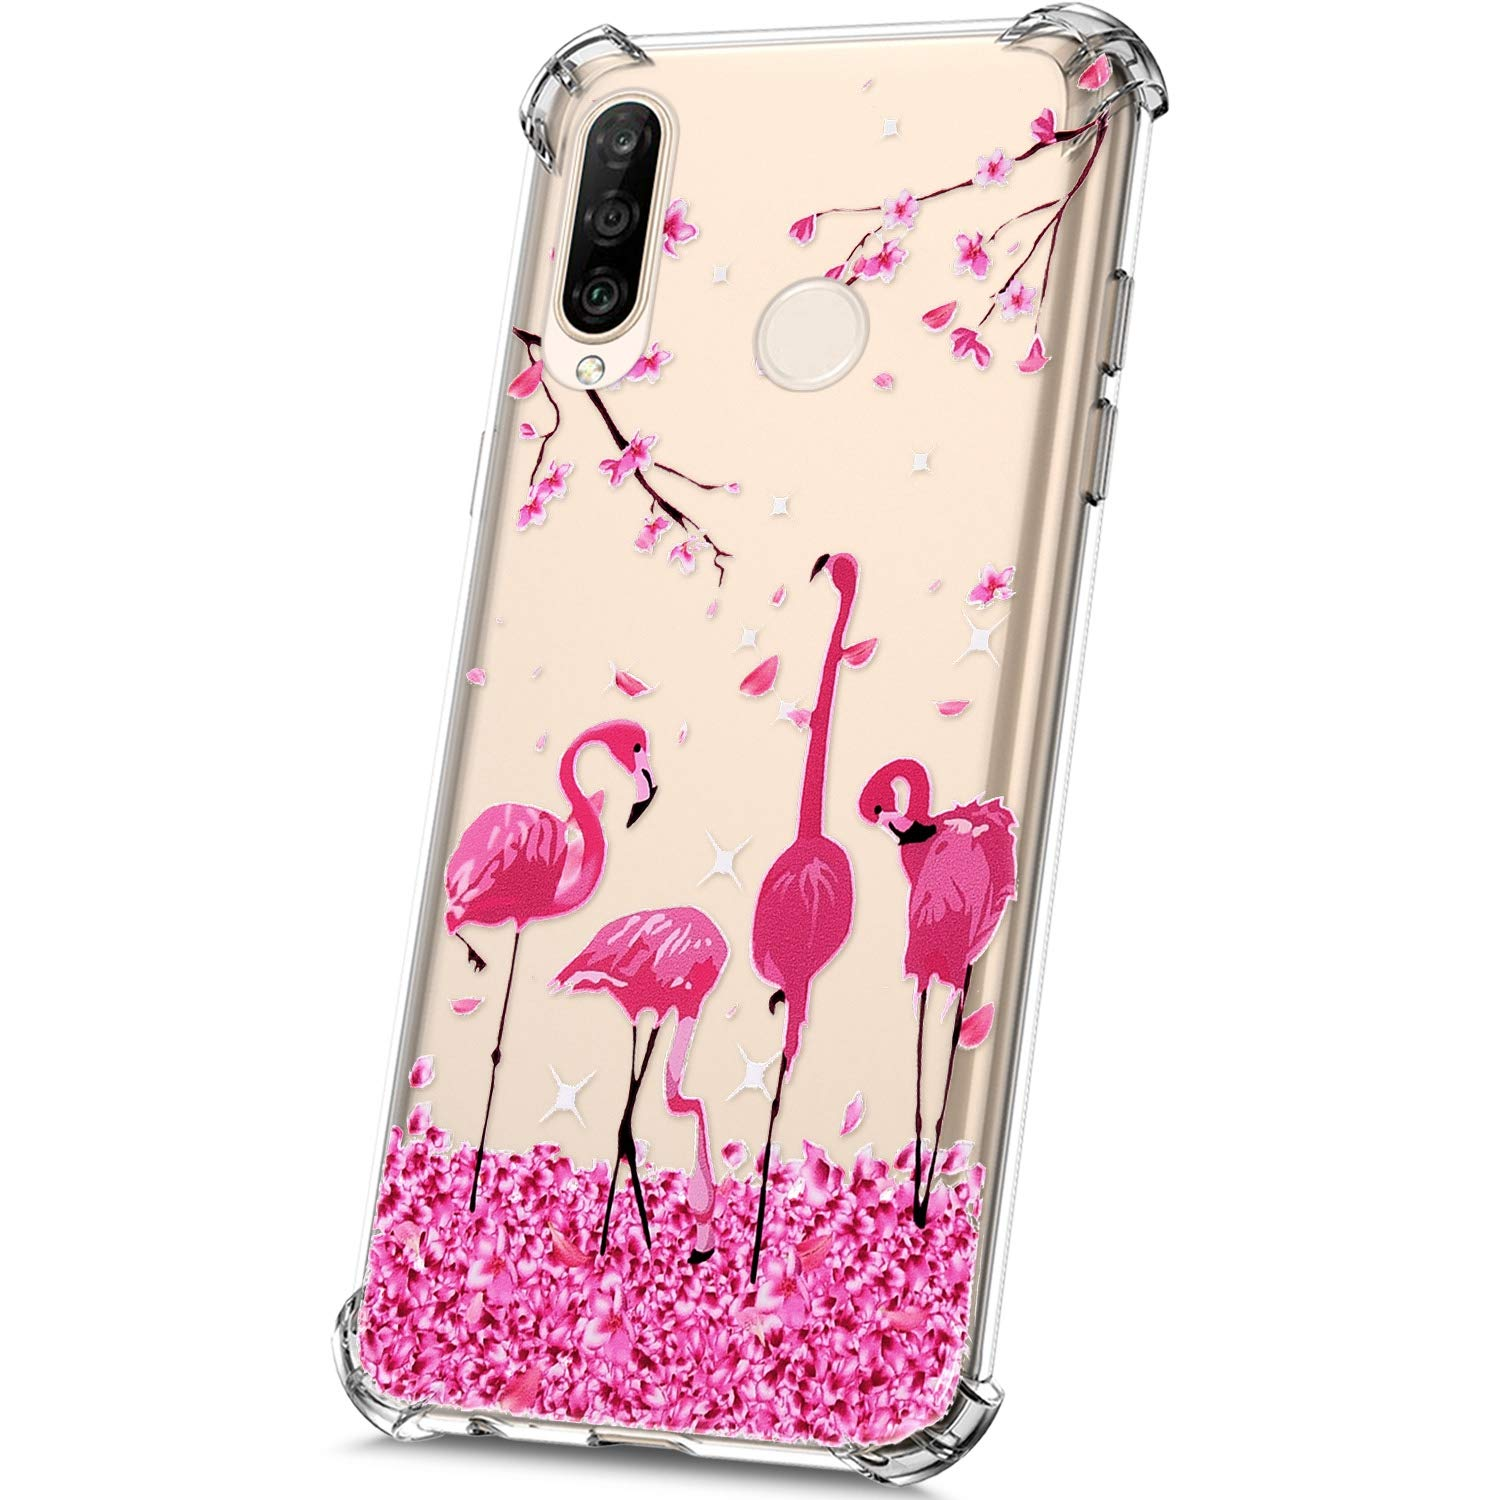 Crystal Clear Thin Soft TPU Silicone Gel Rubber Bumper Case with Pretty Design Ultra Slim Fit Shockproof Protective Case,Panda JAWSEU Transparent Case Compatible with Huawei P30 Lite